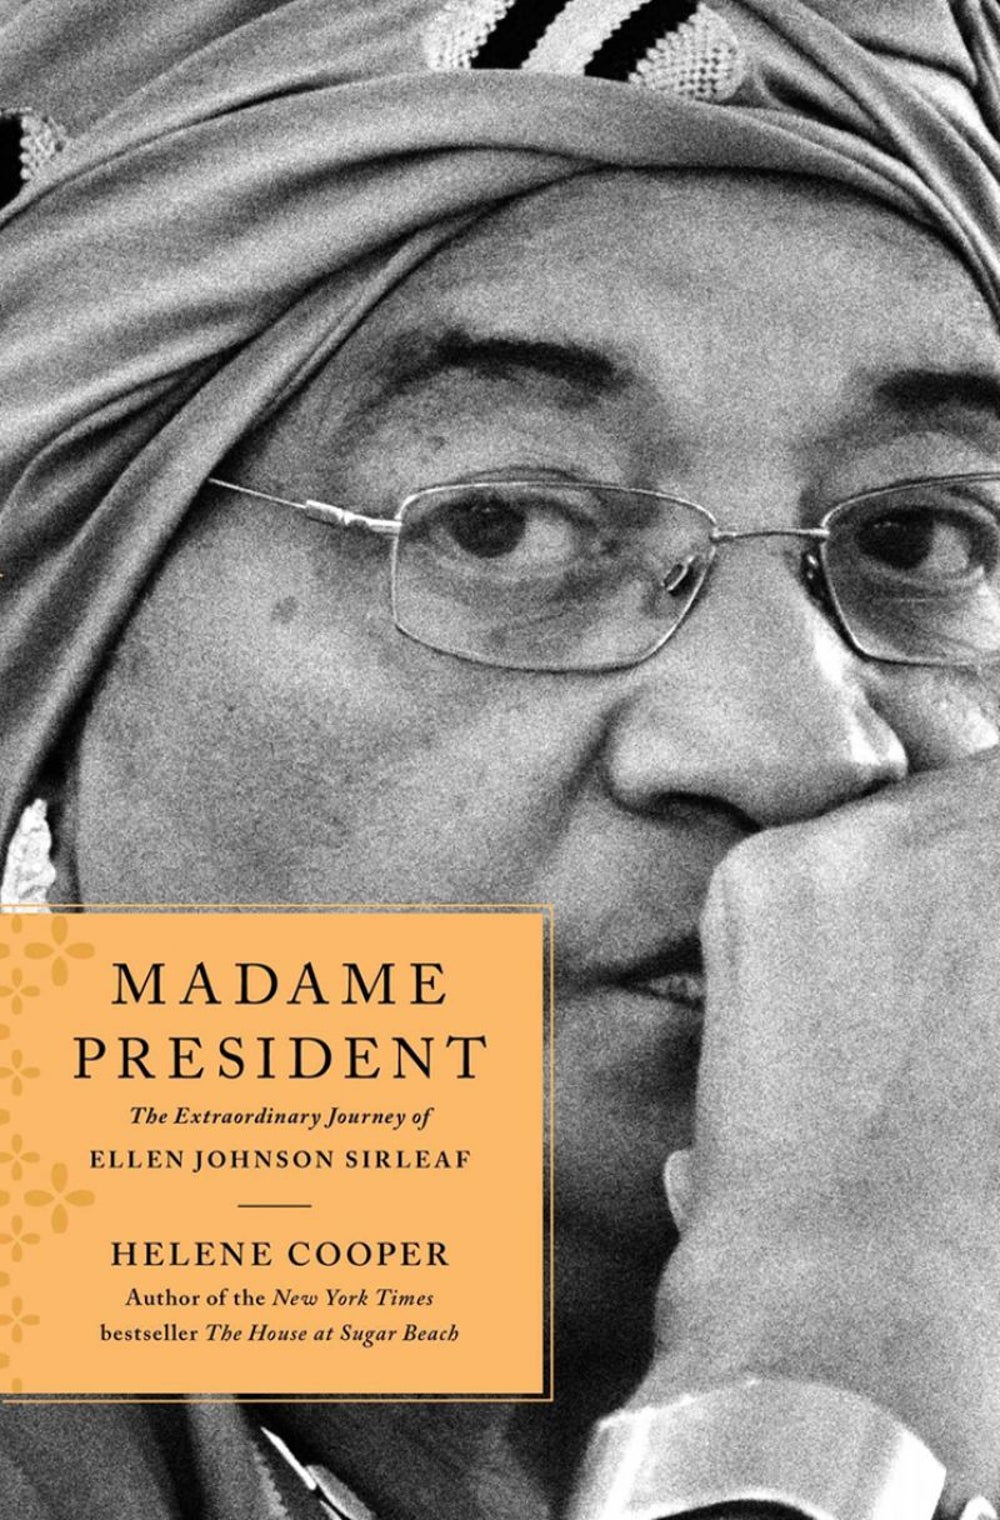 Madame President: The Extraordinary Journey of Ellen Johnson Sirleaf by Helene Cooper